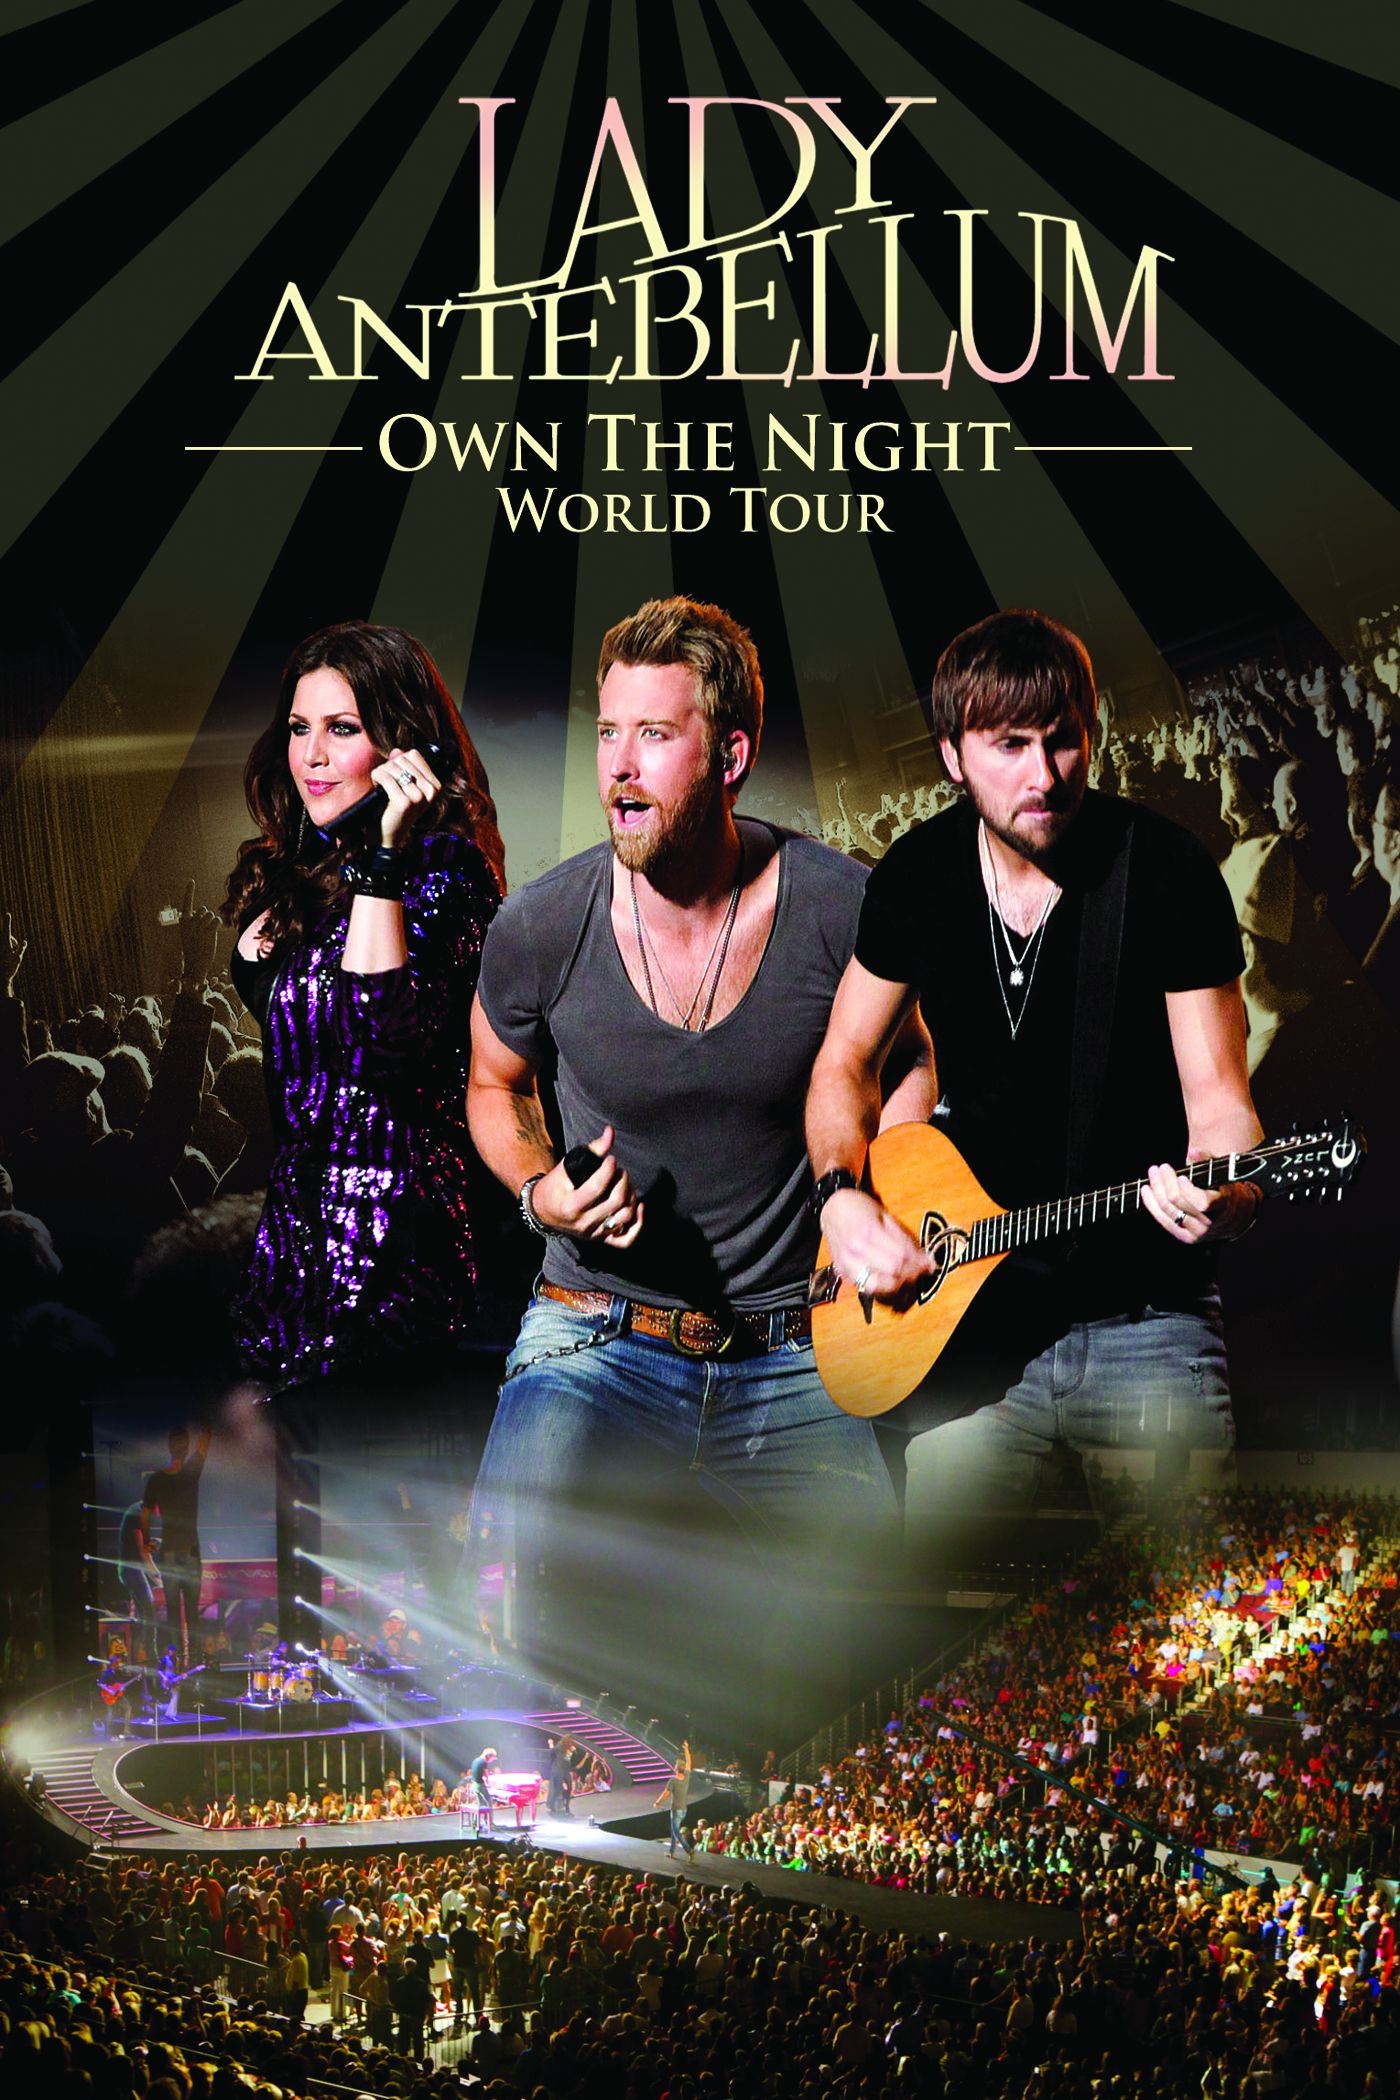 Lady Antebellum – Own the Night World (2012) [iTunes Movie – Full HD]